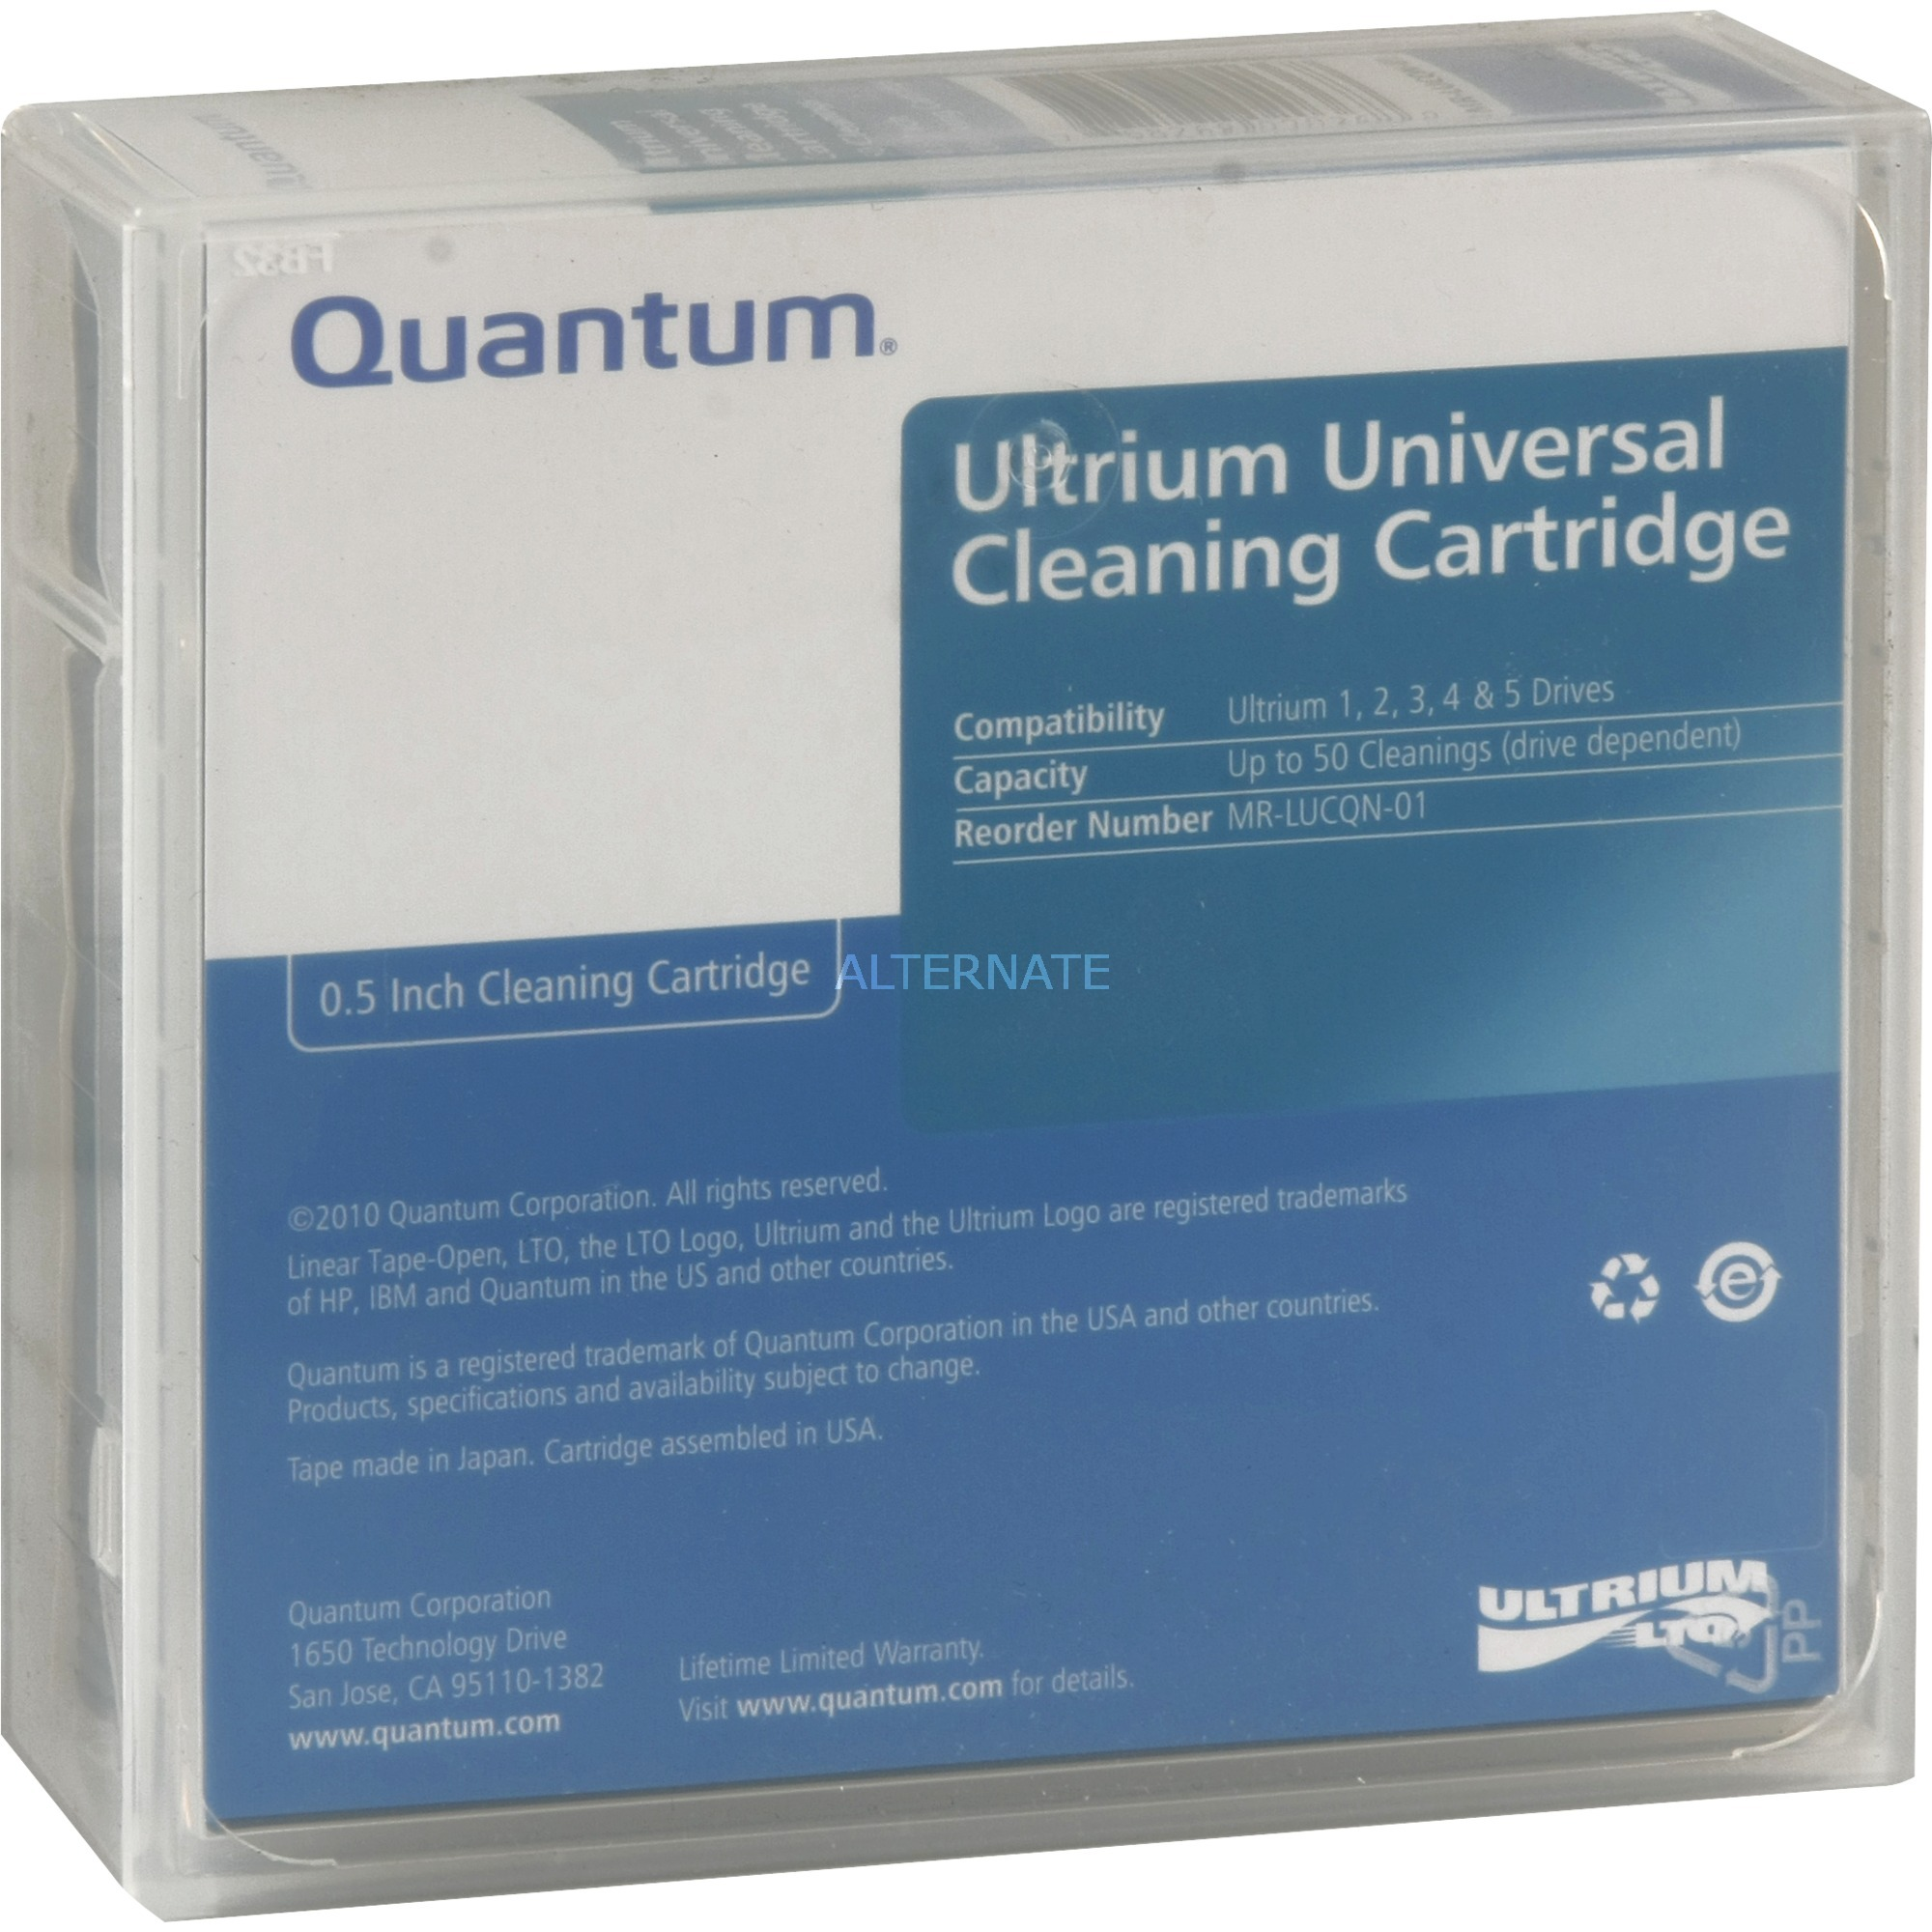 Cleaning cartridge, LTO Universal, Cinta limpiadora